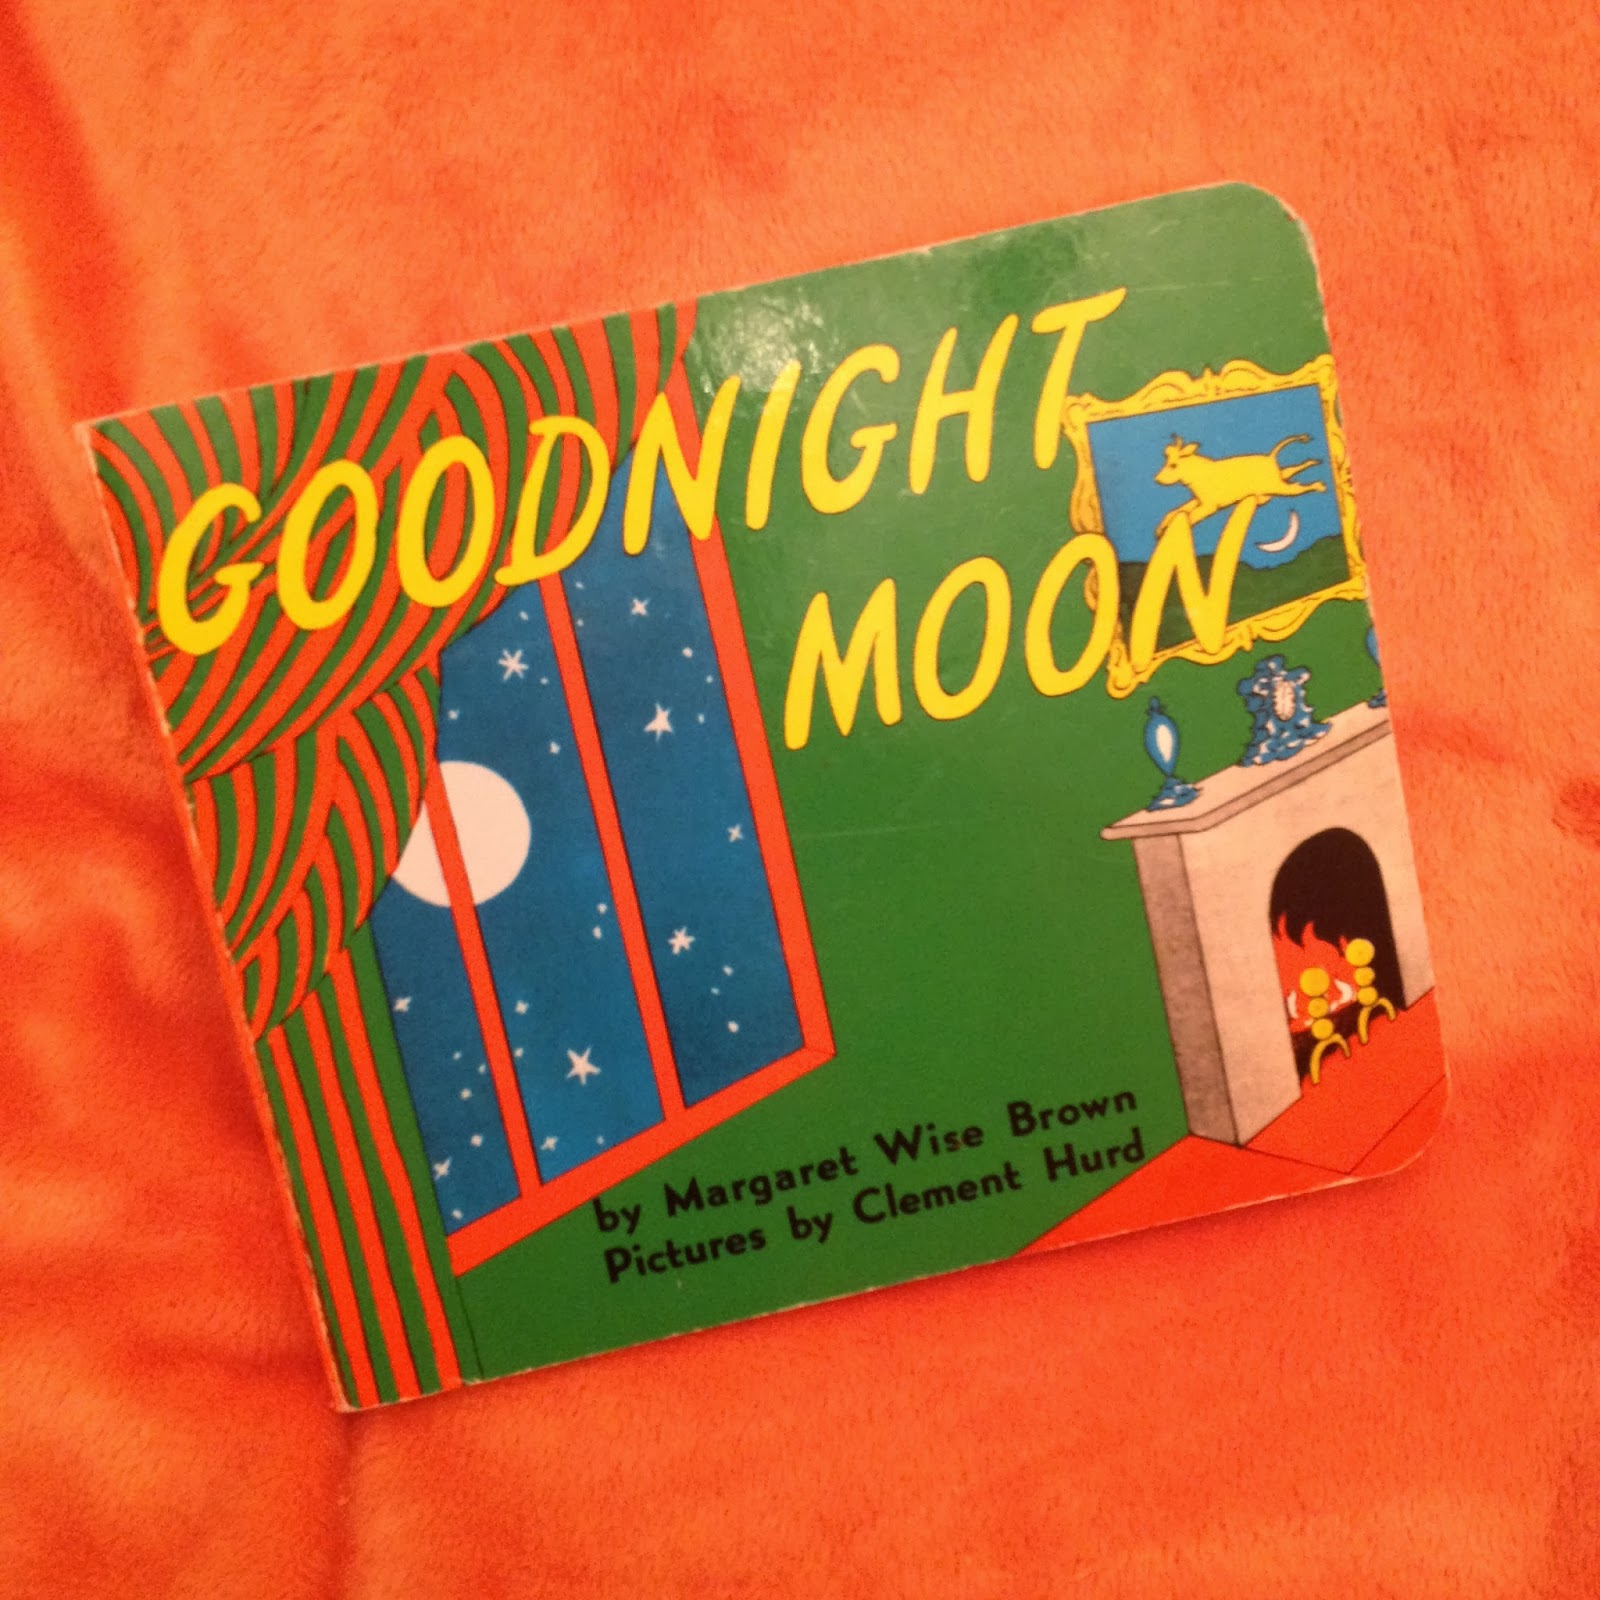 mamasVIB | V. I. BOOKCLUB: Build a classic library for kids (Goodnight Moon) | Build a classic library | Goodnight Moon | sunday night book club | classic baby books | Kids library | mamasVIB